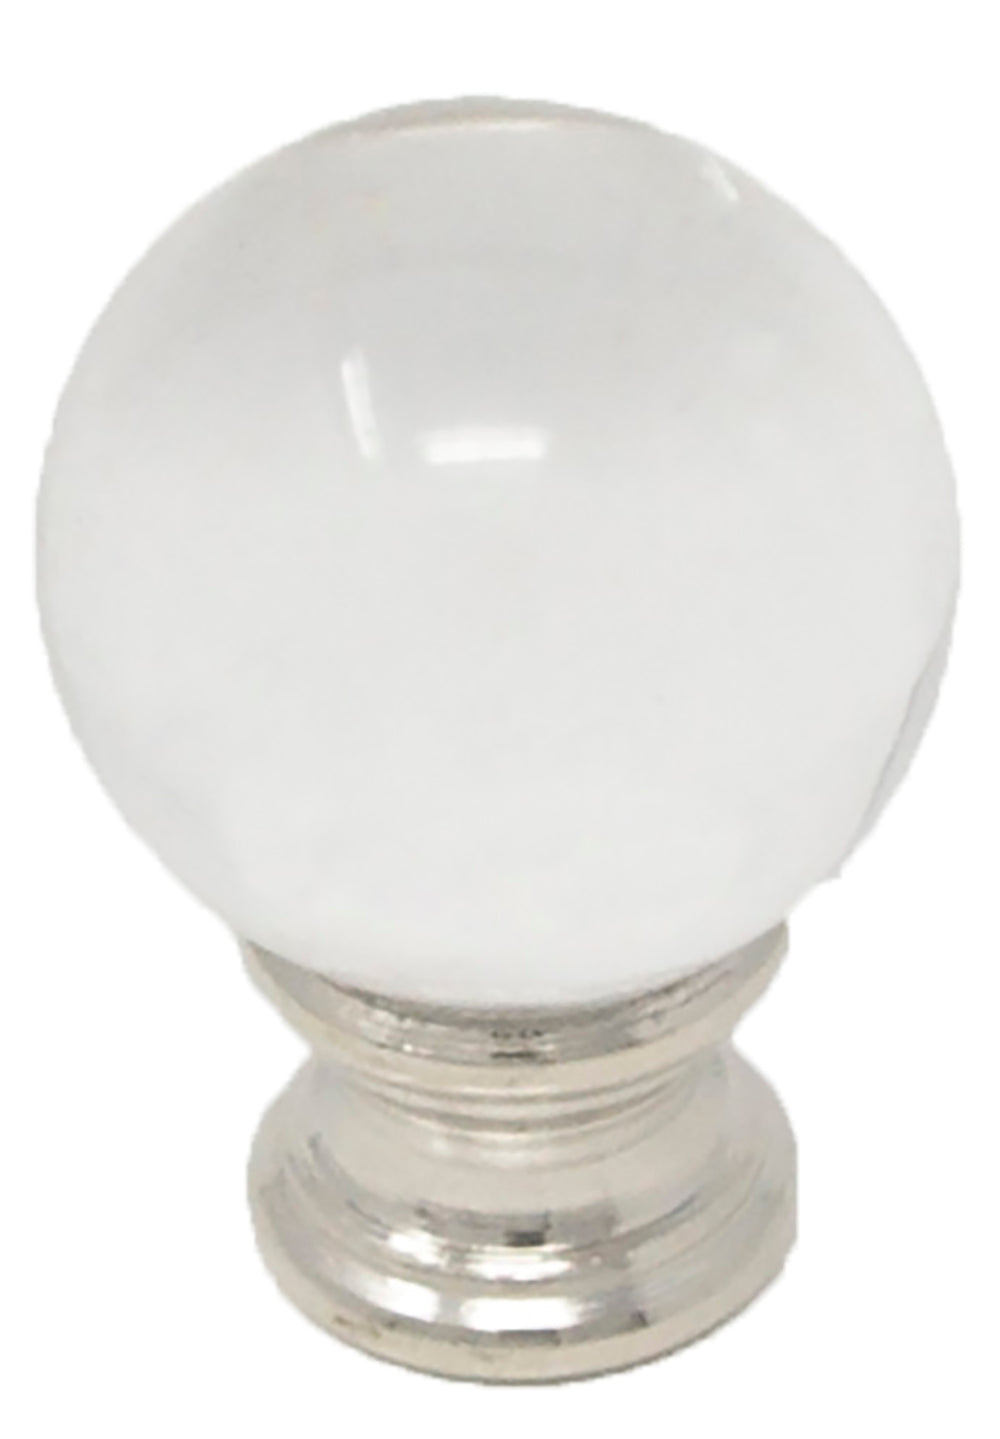 Crystal Ball Lamp Finial For Lamp Shades 1 5 8 Inch